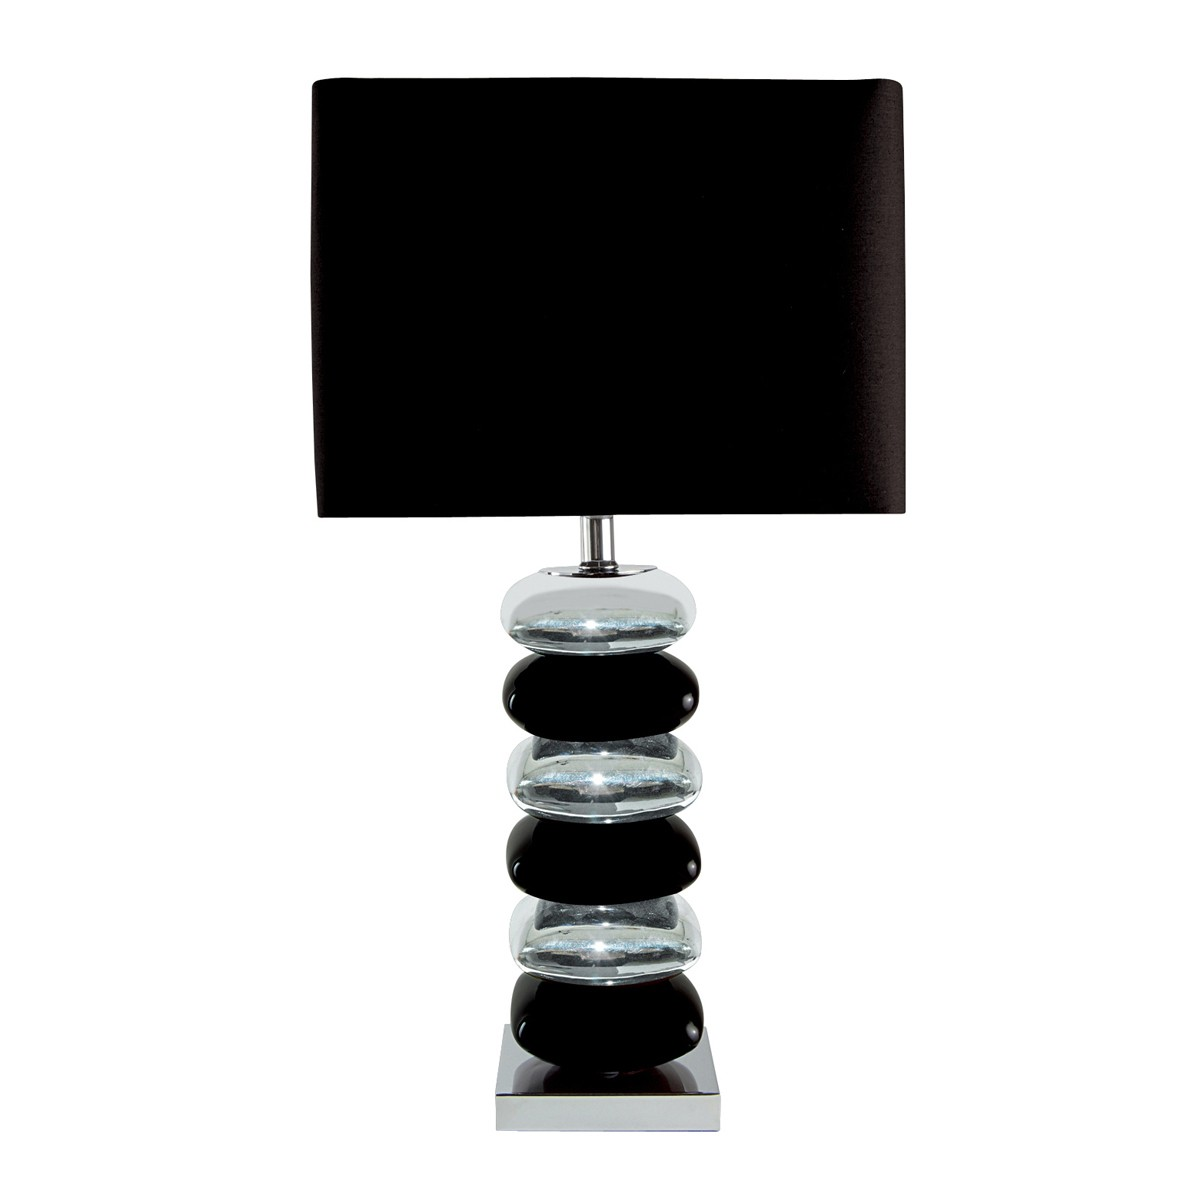 Modern table lamps product categories stanways stoves and lights black chrome pillow stack table lamp with black shade 4318cc 1 geotapseo Image collections